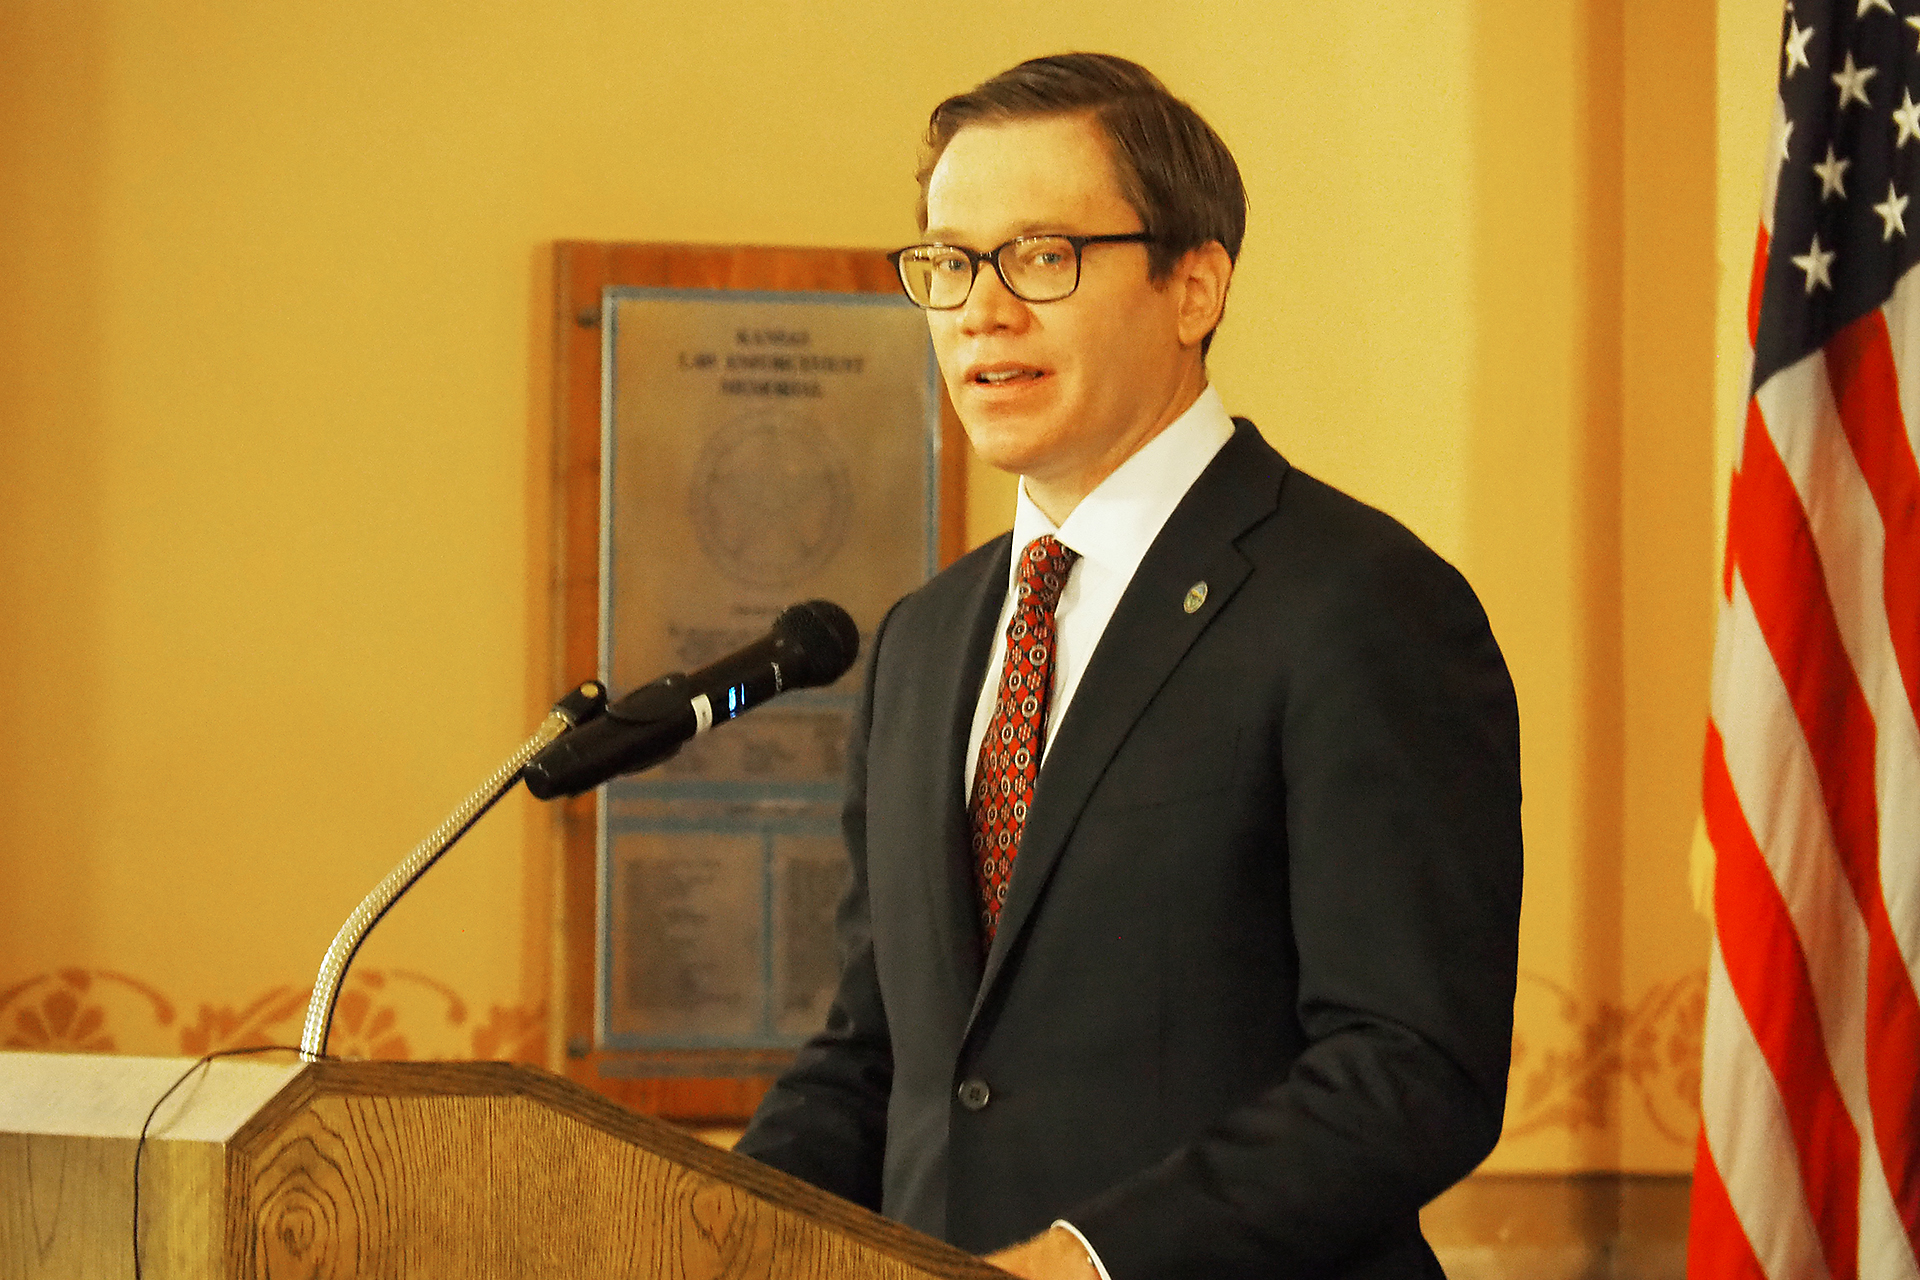 Toland sworn in as lieutenant governor of Kansas, but keeping old job at commerce